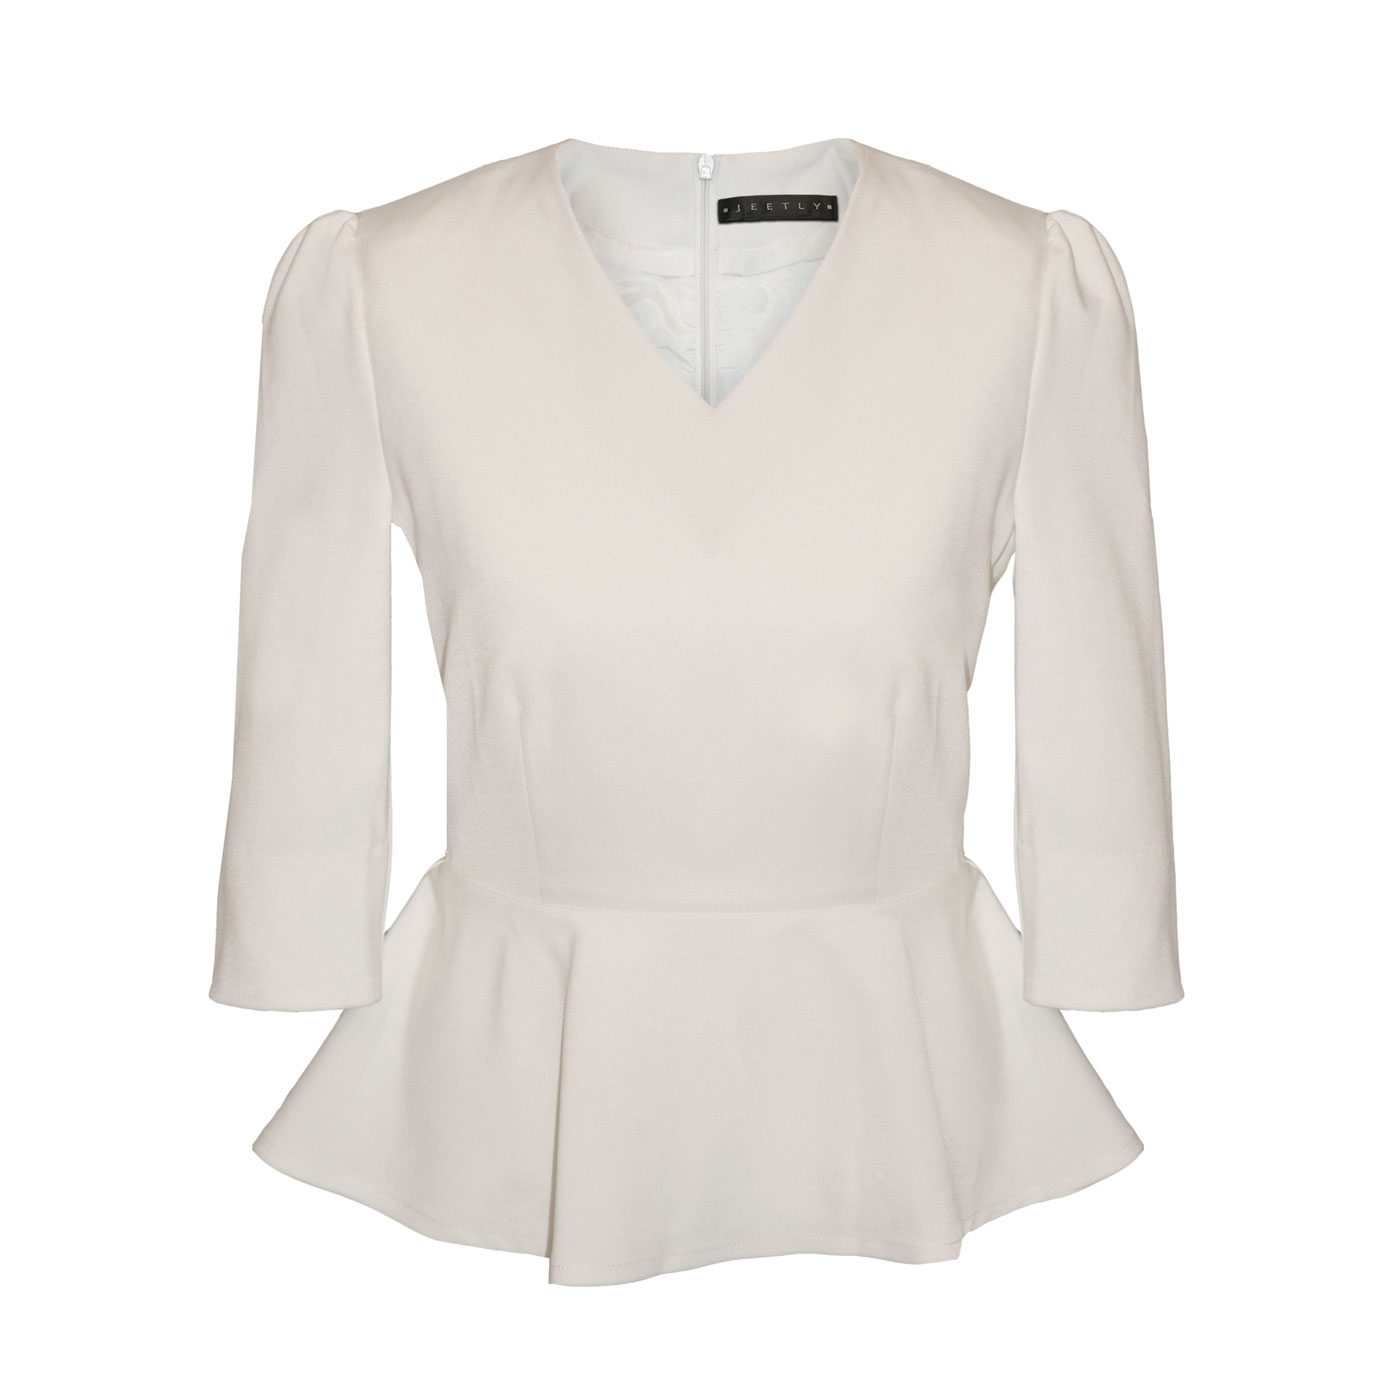 jeetly chloe petite white peplum top